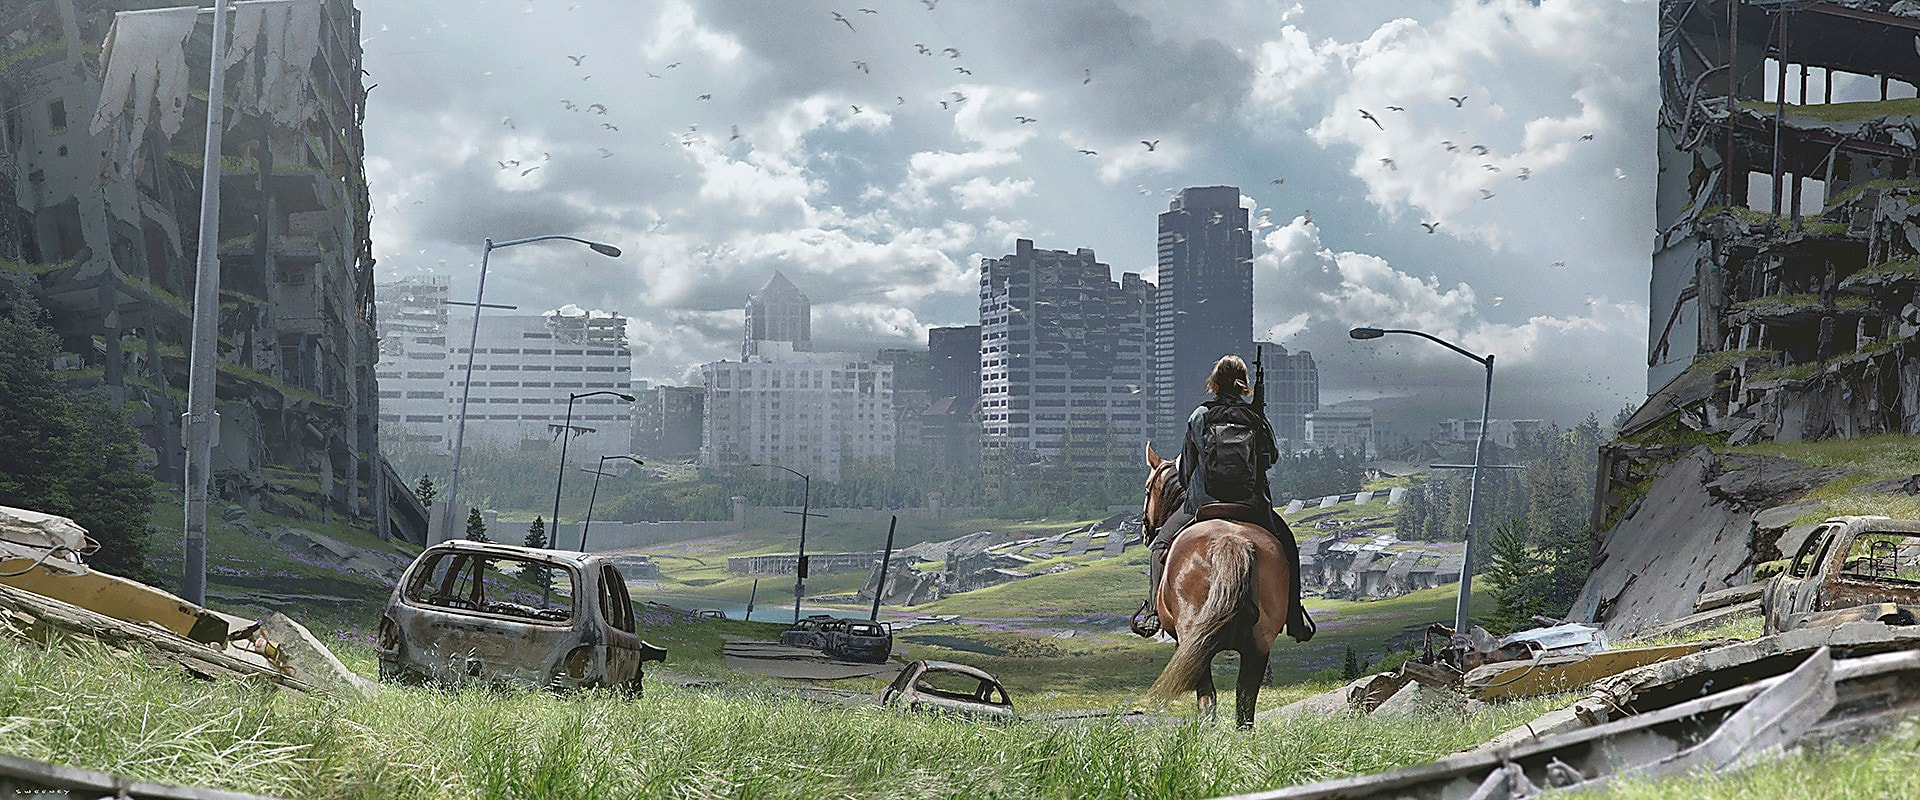 New The Last of Us Part II Concept Art Revealed